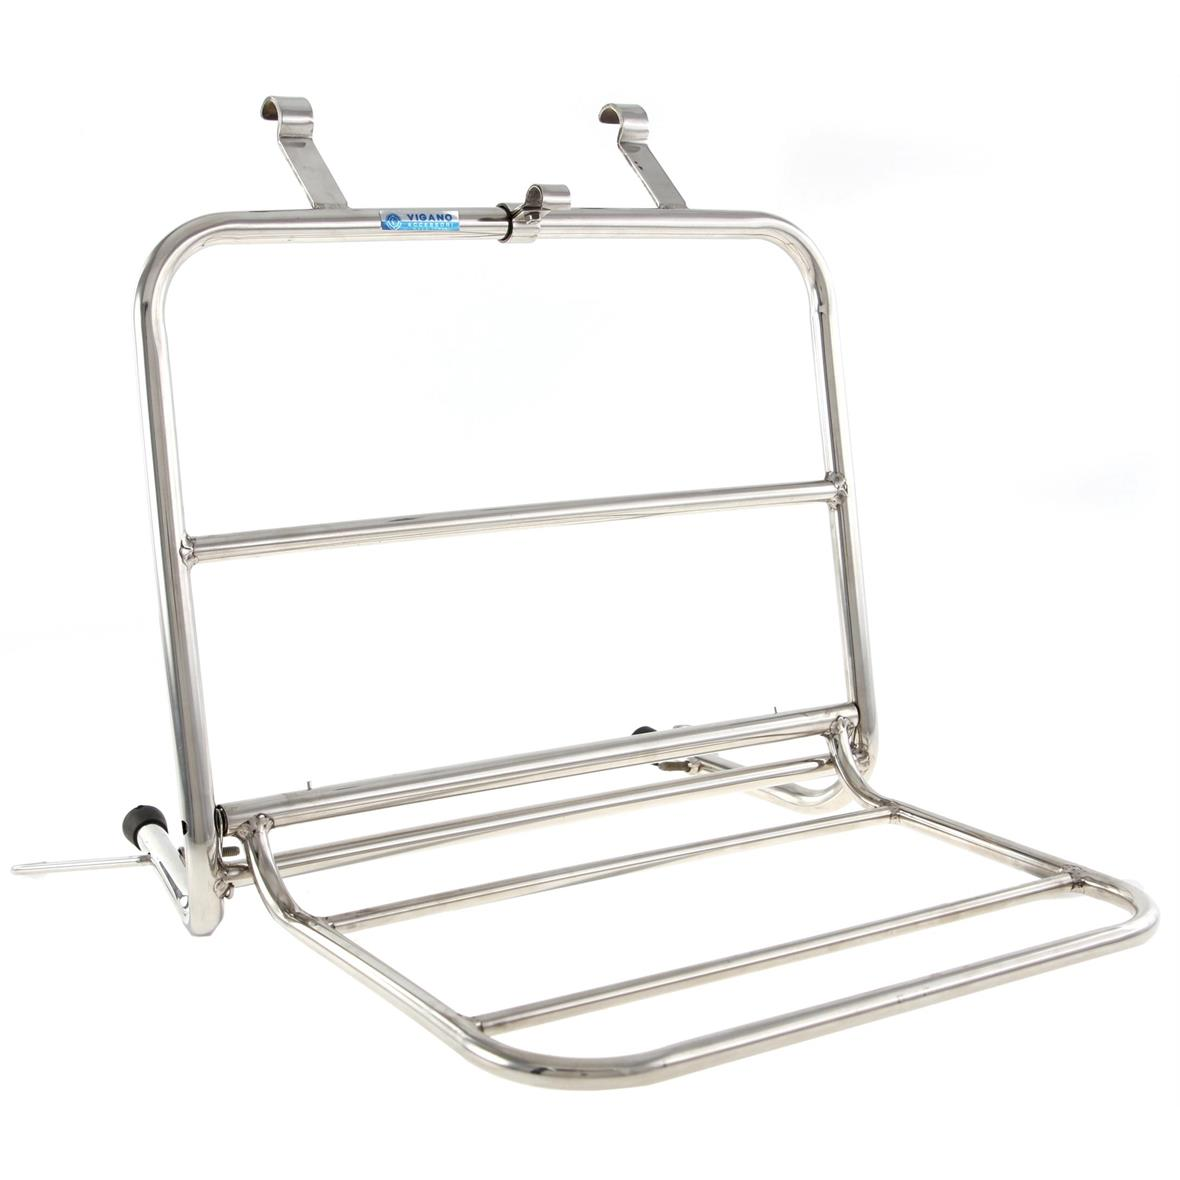 Product Image for 'Luggage Carrier frontTitle'